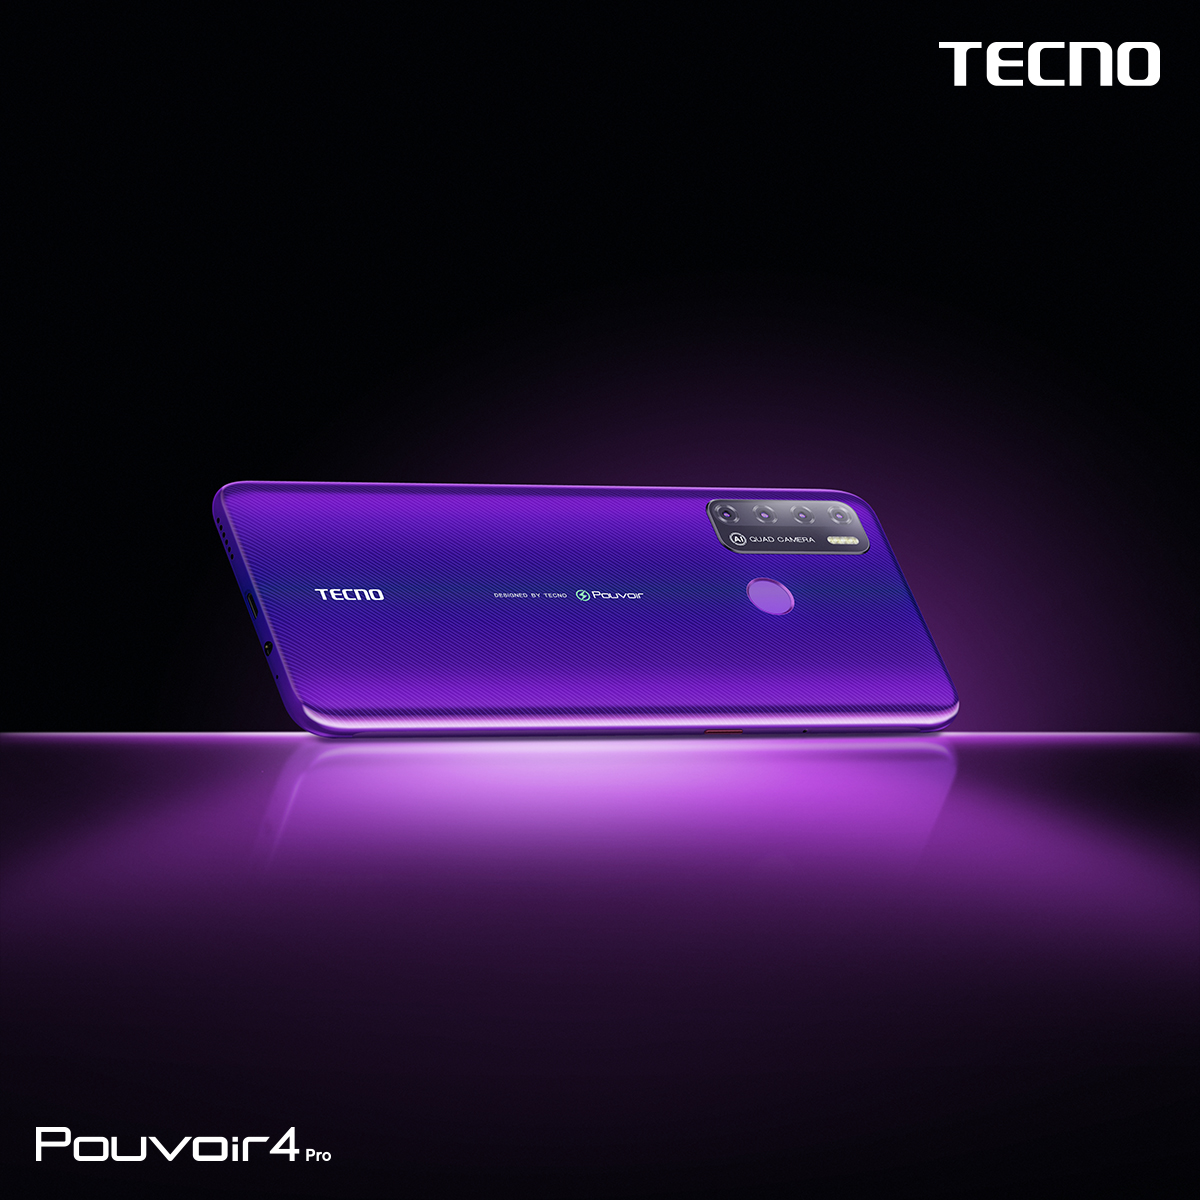 Make royalty your identity with the Pouvoir 4 Pro in Fascinating purple! Get this amazing device for 909 cedis in all accredited Tecno shops nationwide. #Pouvoir4 #AlwaysPowerOn #TecnoGhana https://t.co/EwapQA0LKF